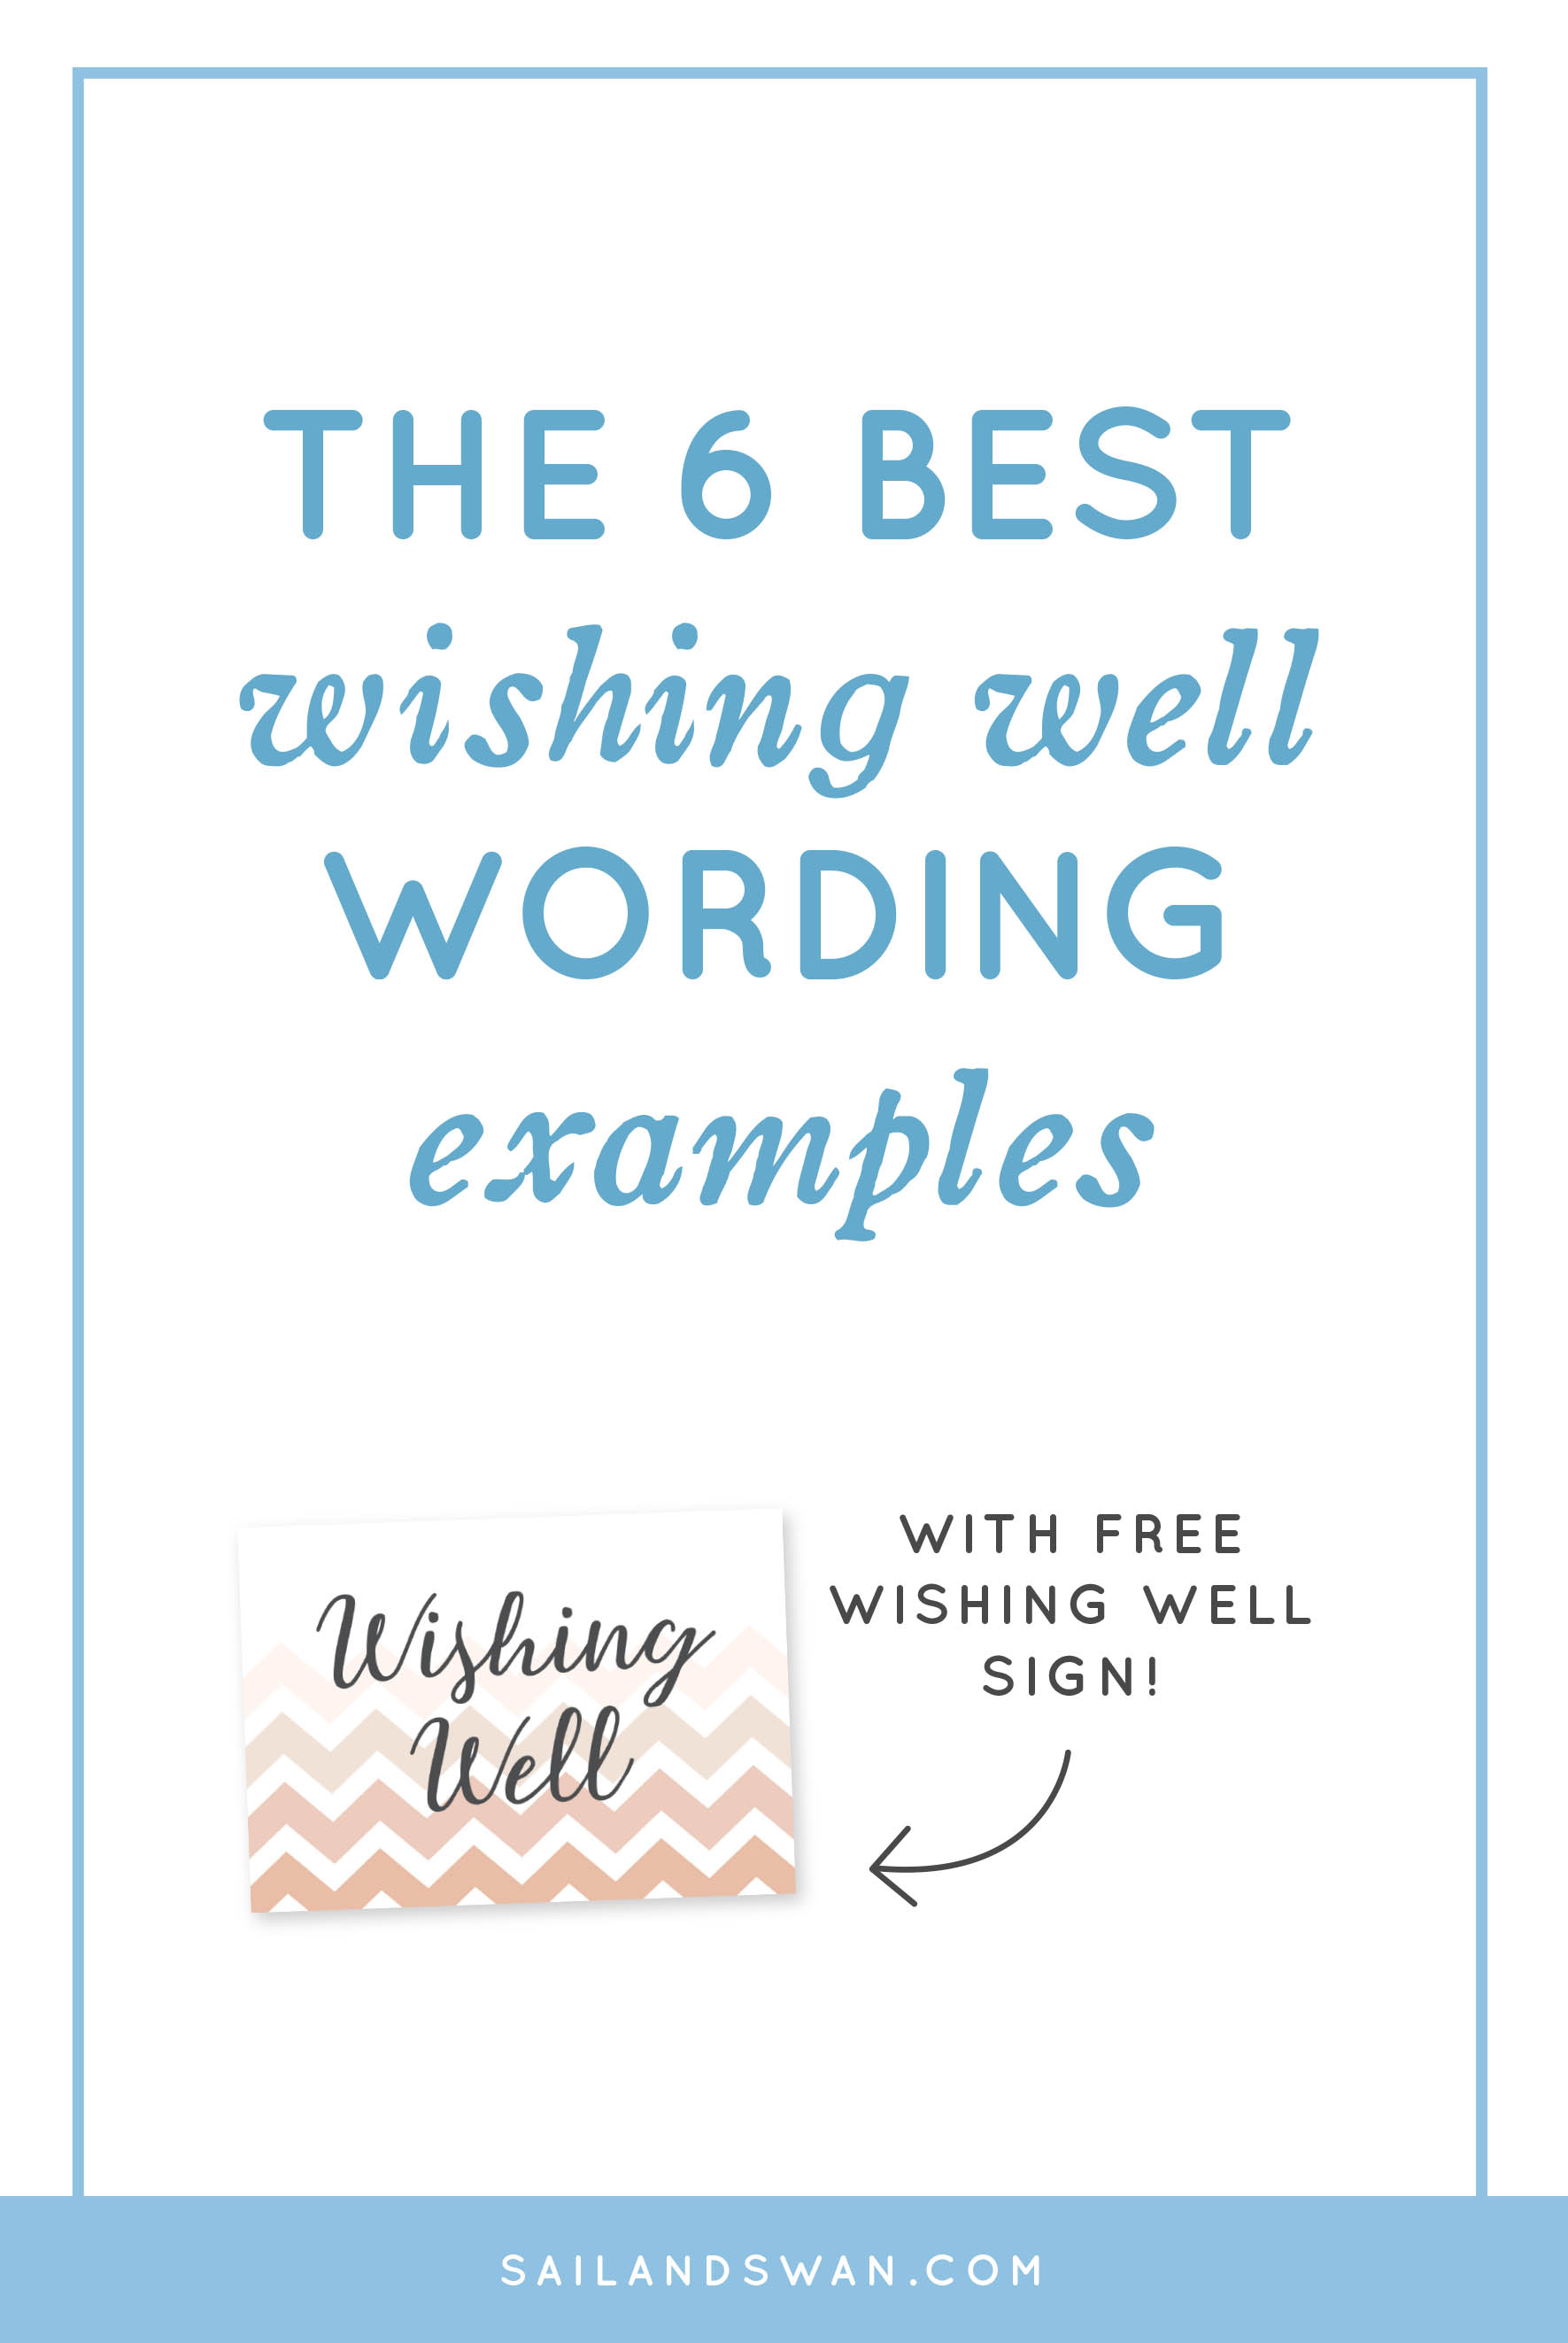 The 6 Best Wishing Well Wording Examples - Wishing Well ...